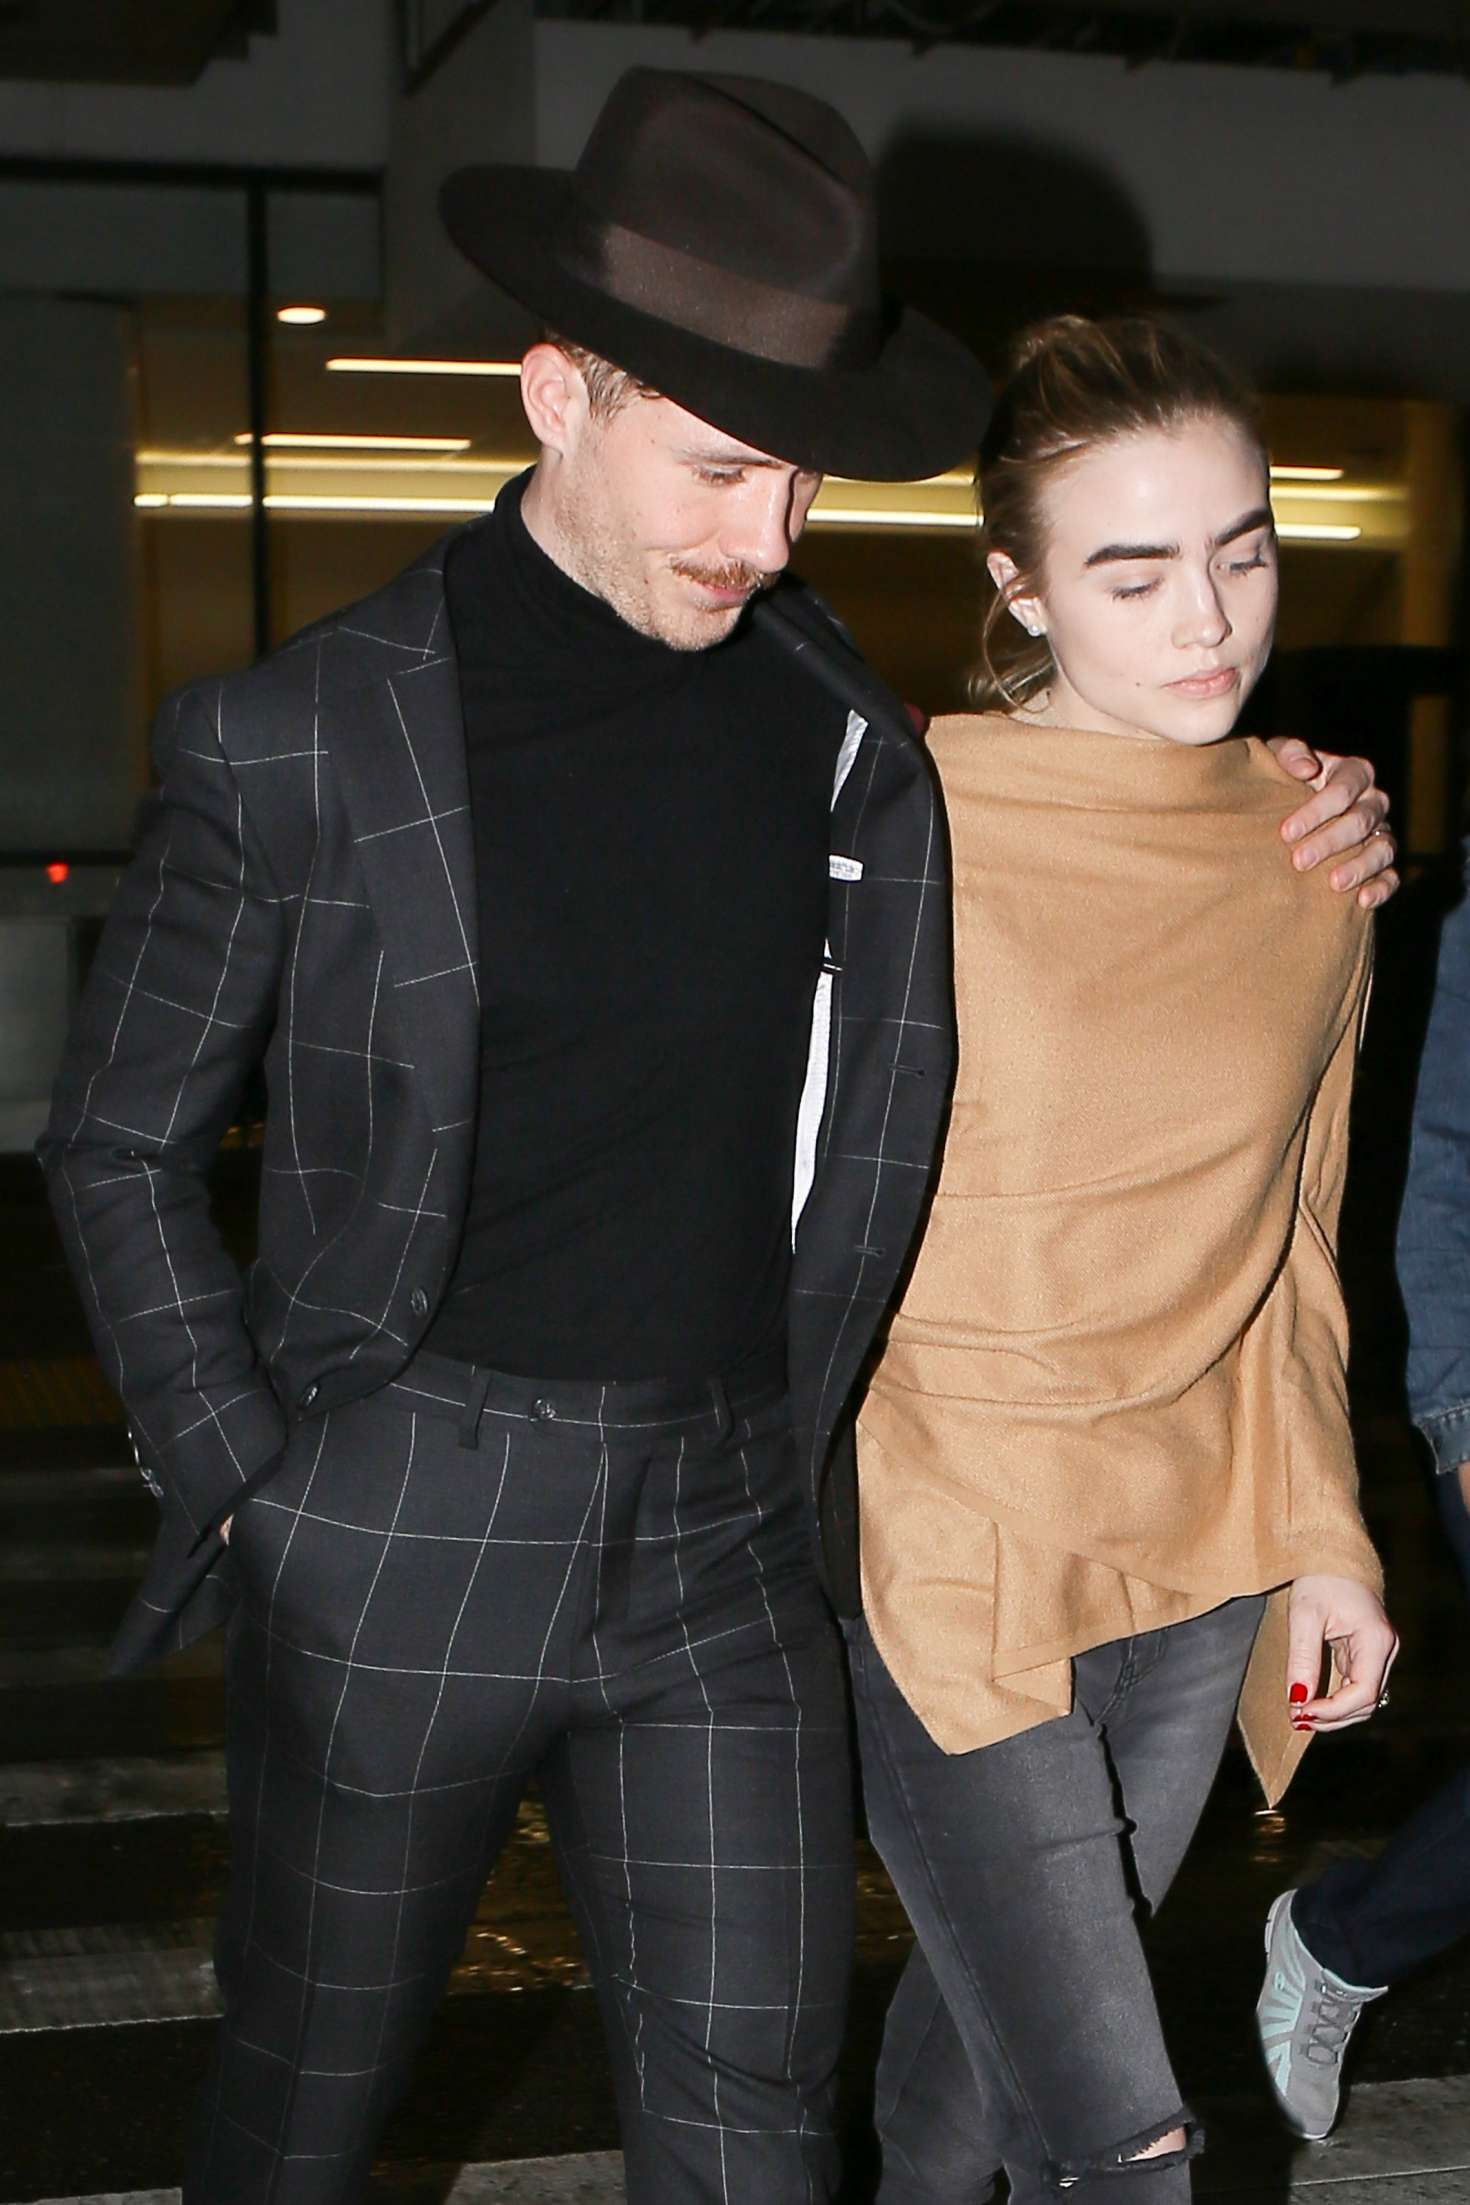 Maddie Hasson With Boyfriend At Lax Airport In La Gotceleb